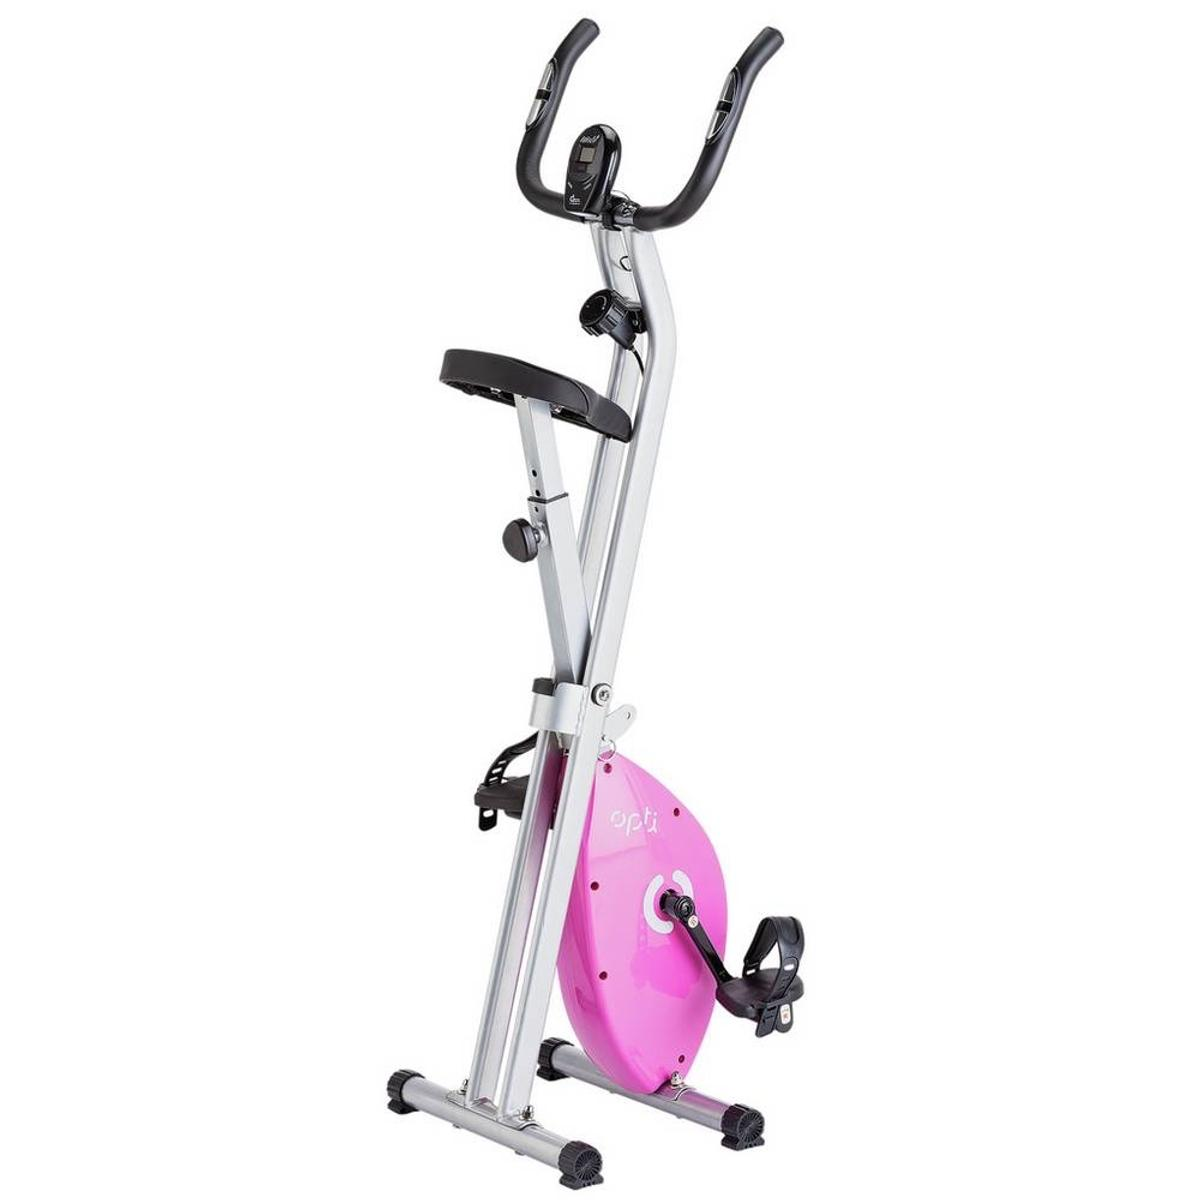 Opti Folding Magnetic Exercise Bike Pink In Cv2 Coventry For